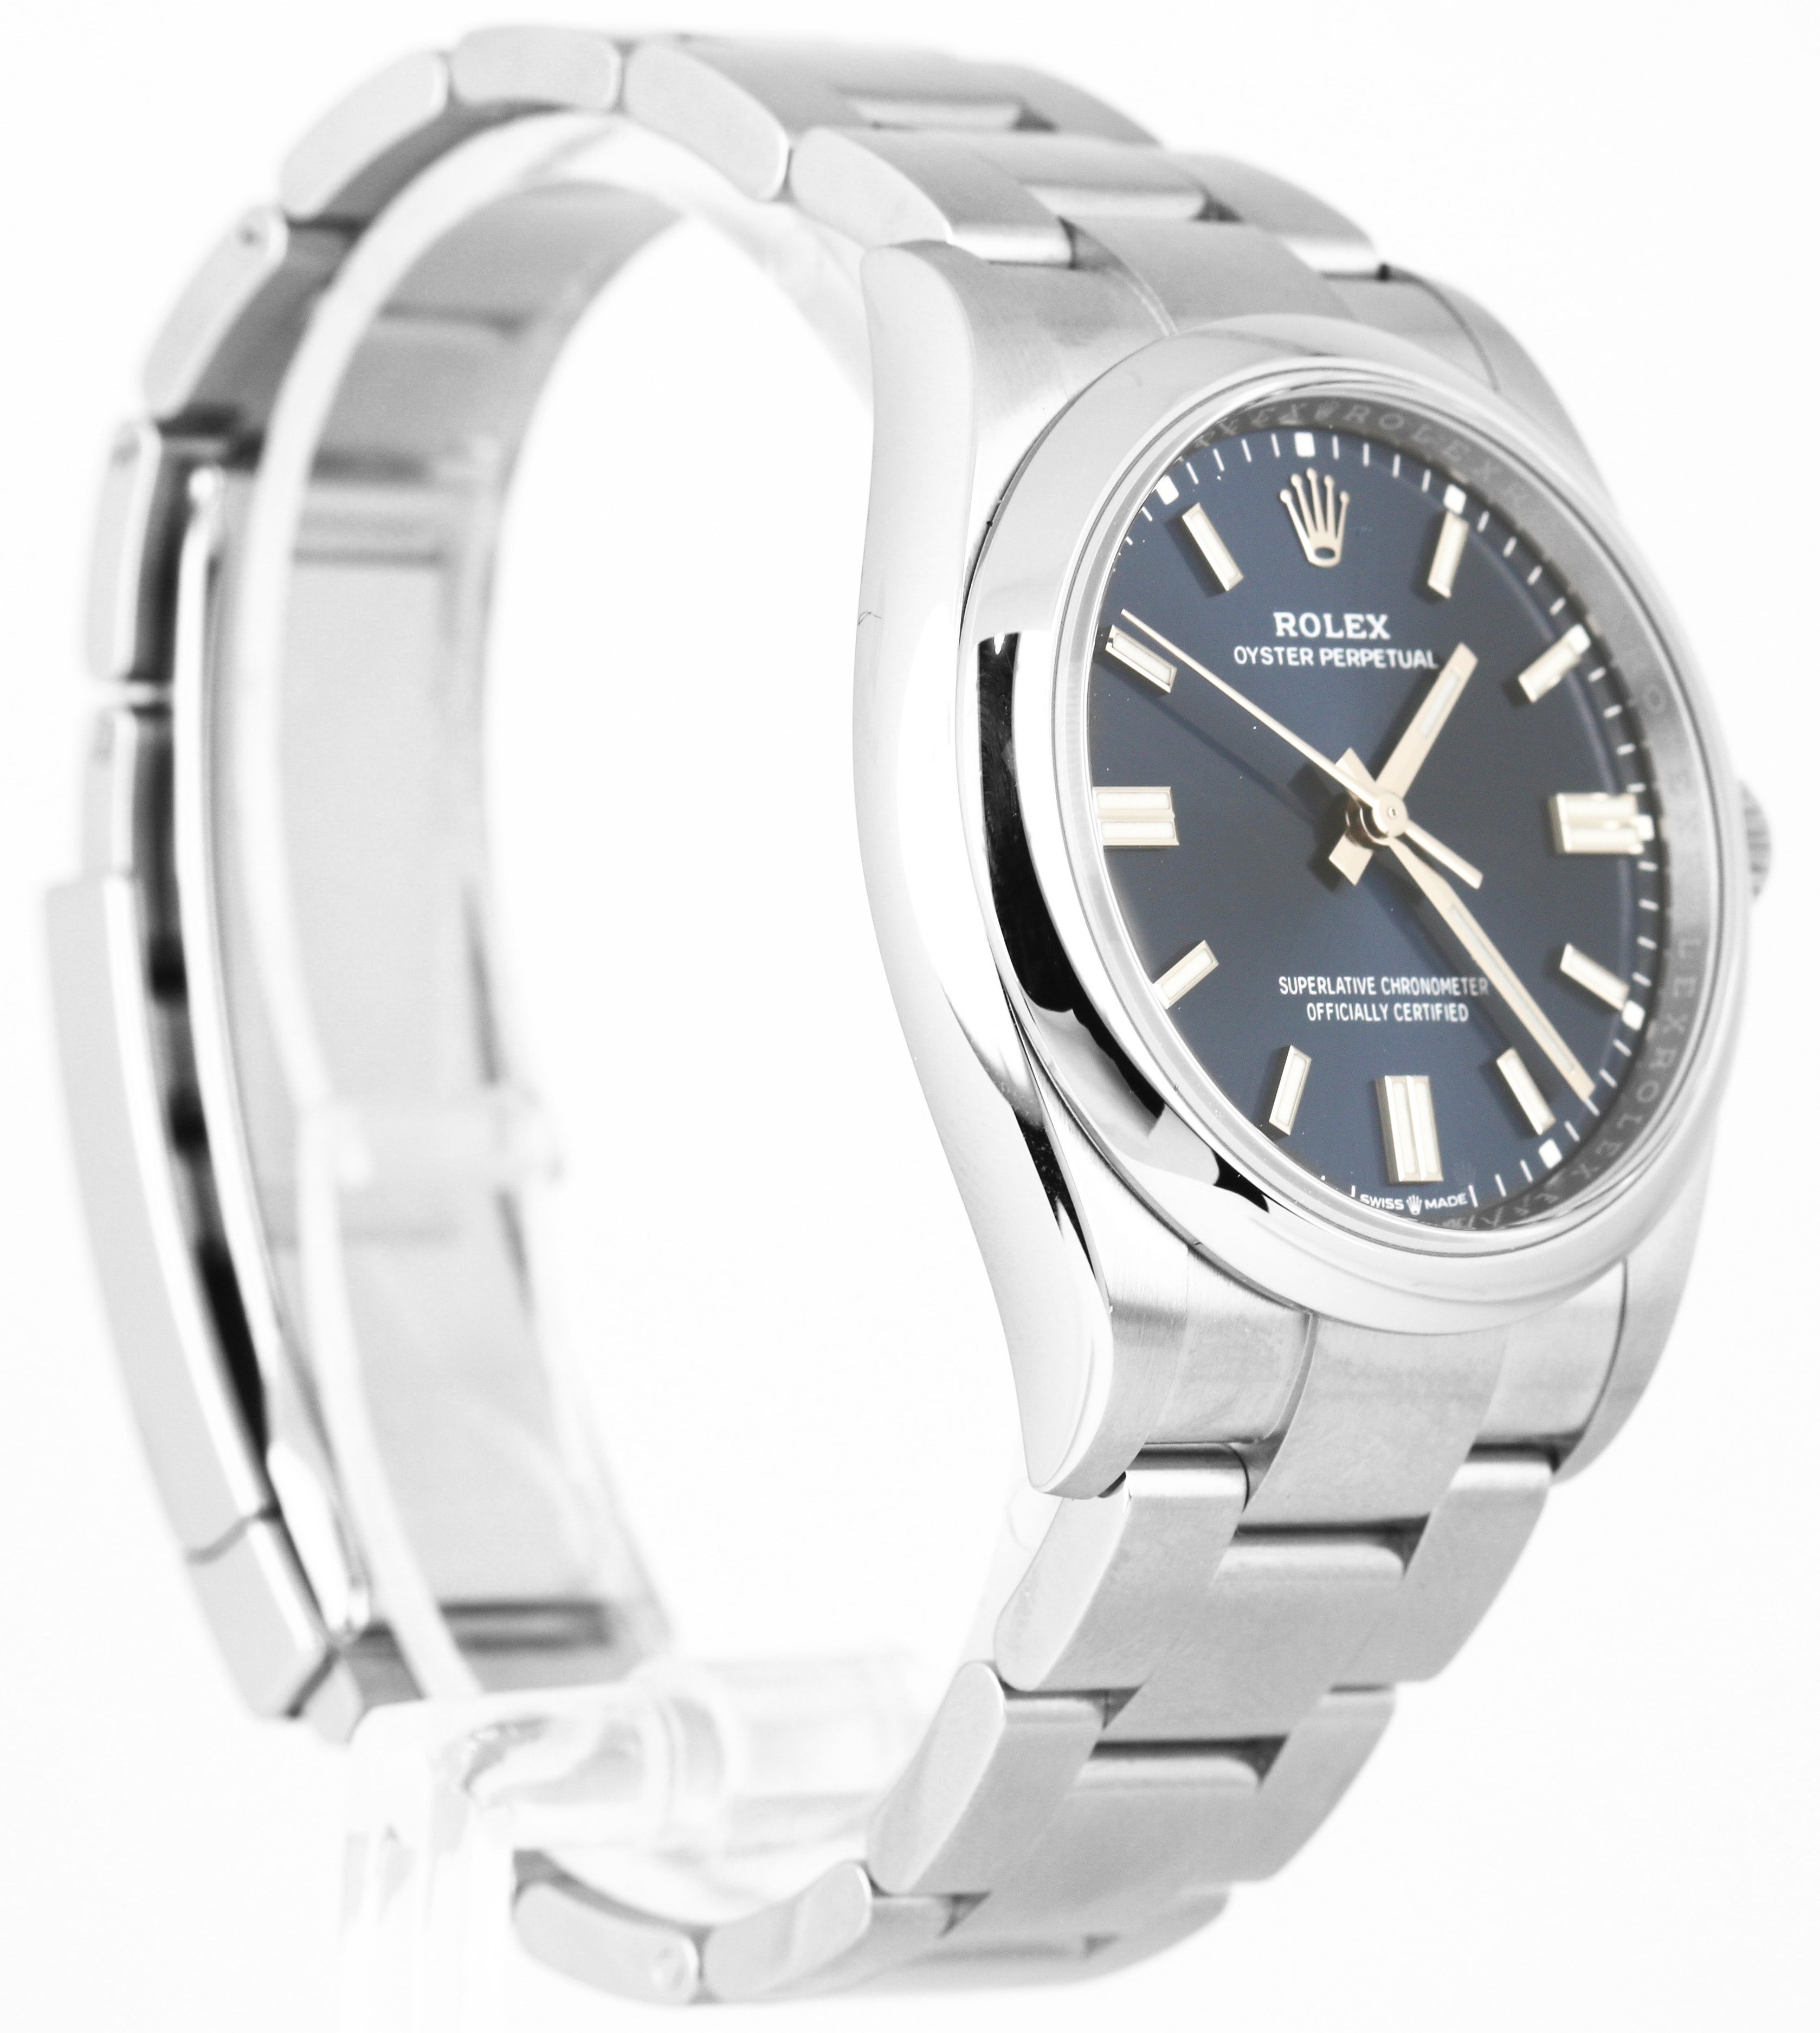 BRAND NEW Rolex Oyster Perpetual 36mm Stainless Steel Blue Stick Watch 126000